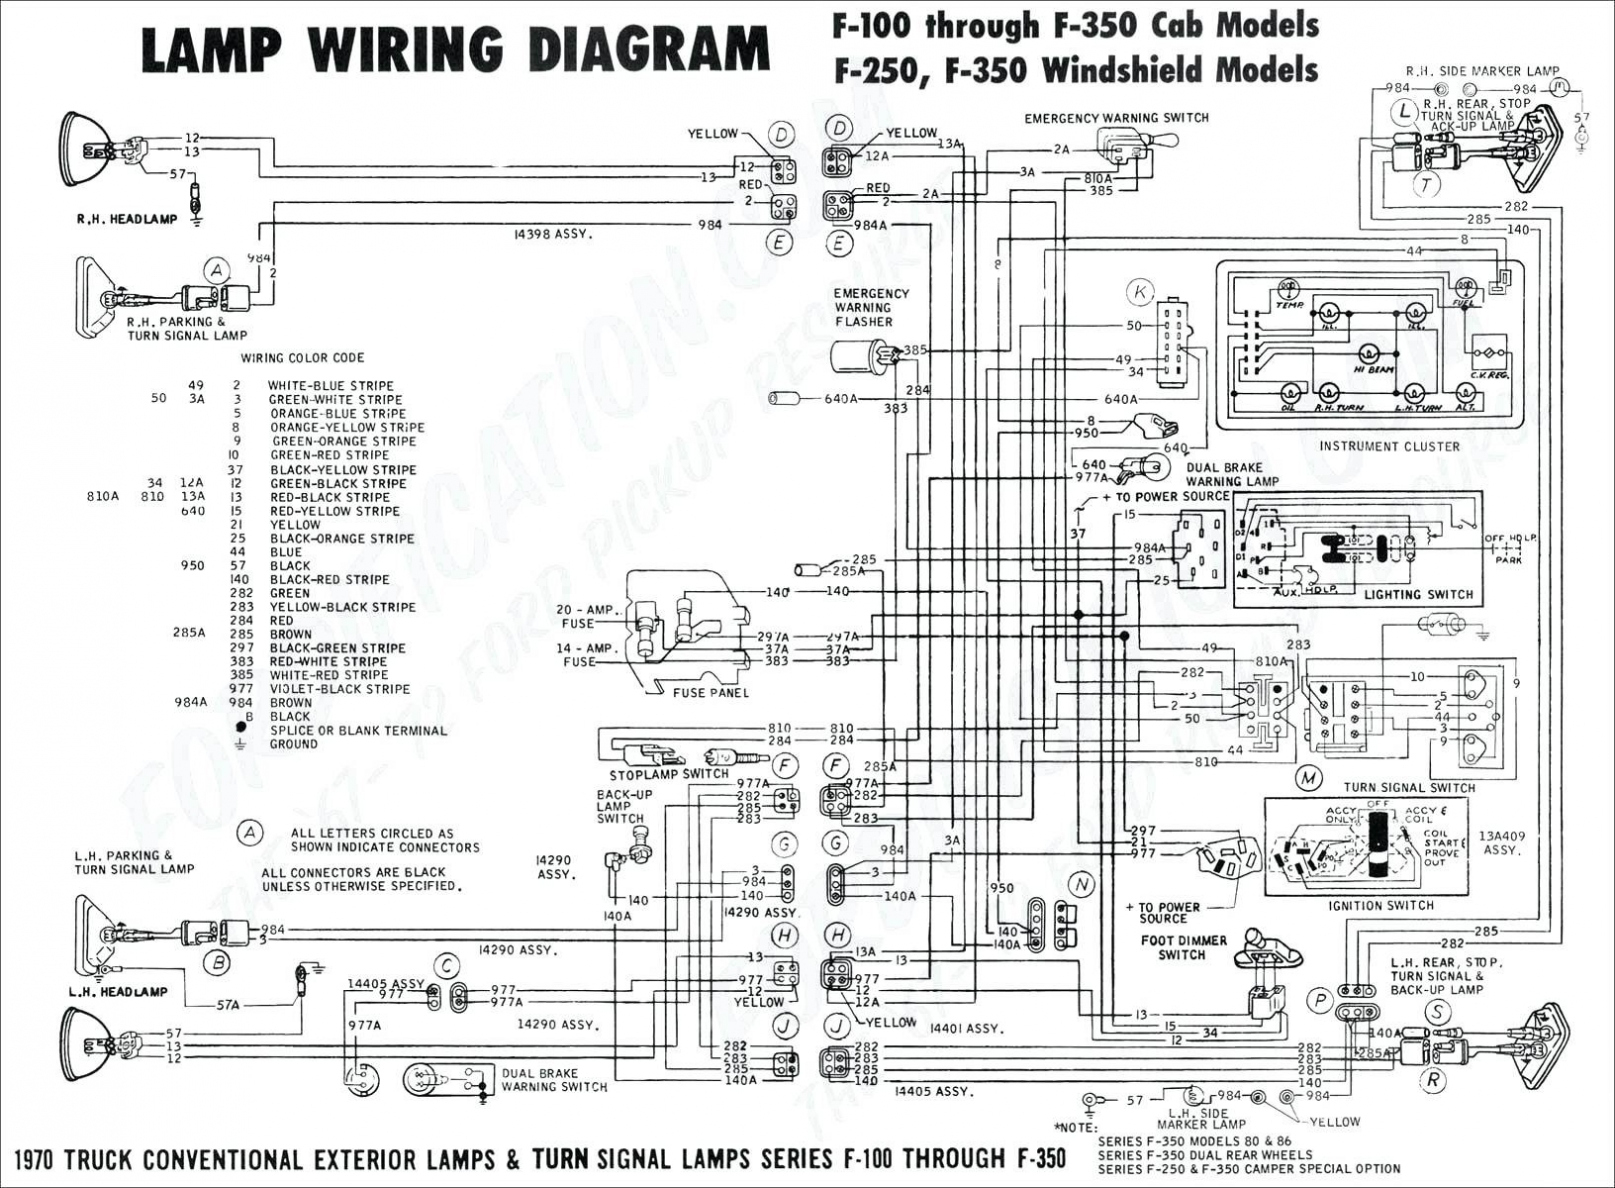 Kenmore Oven Wiring Diagram 363 9378810 | Wiring Diagram on kenmore oven control panel, kenmore oven serial number, kenmore gas stove diagram, kenmore oven voltage, kenmore oven thermostat replacement, kenmore oven error codes, kenmore oven model numbers, kenmore oven troubleshooting, kenmore oven clock, dishwasher wiring diagram, washing machine wiring diagram, kenmore microwave parts diagram, stove wiring diagram, control panel wiring diagram, kenmore oven parts, kenmore oven cover, kenmore stove troubleshooting f1, kenmore oven sensor, kenmore oven fuse, kenmore oven manual,